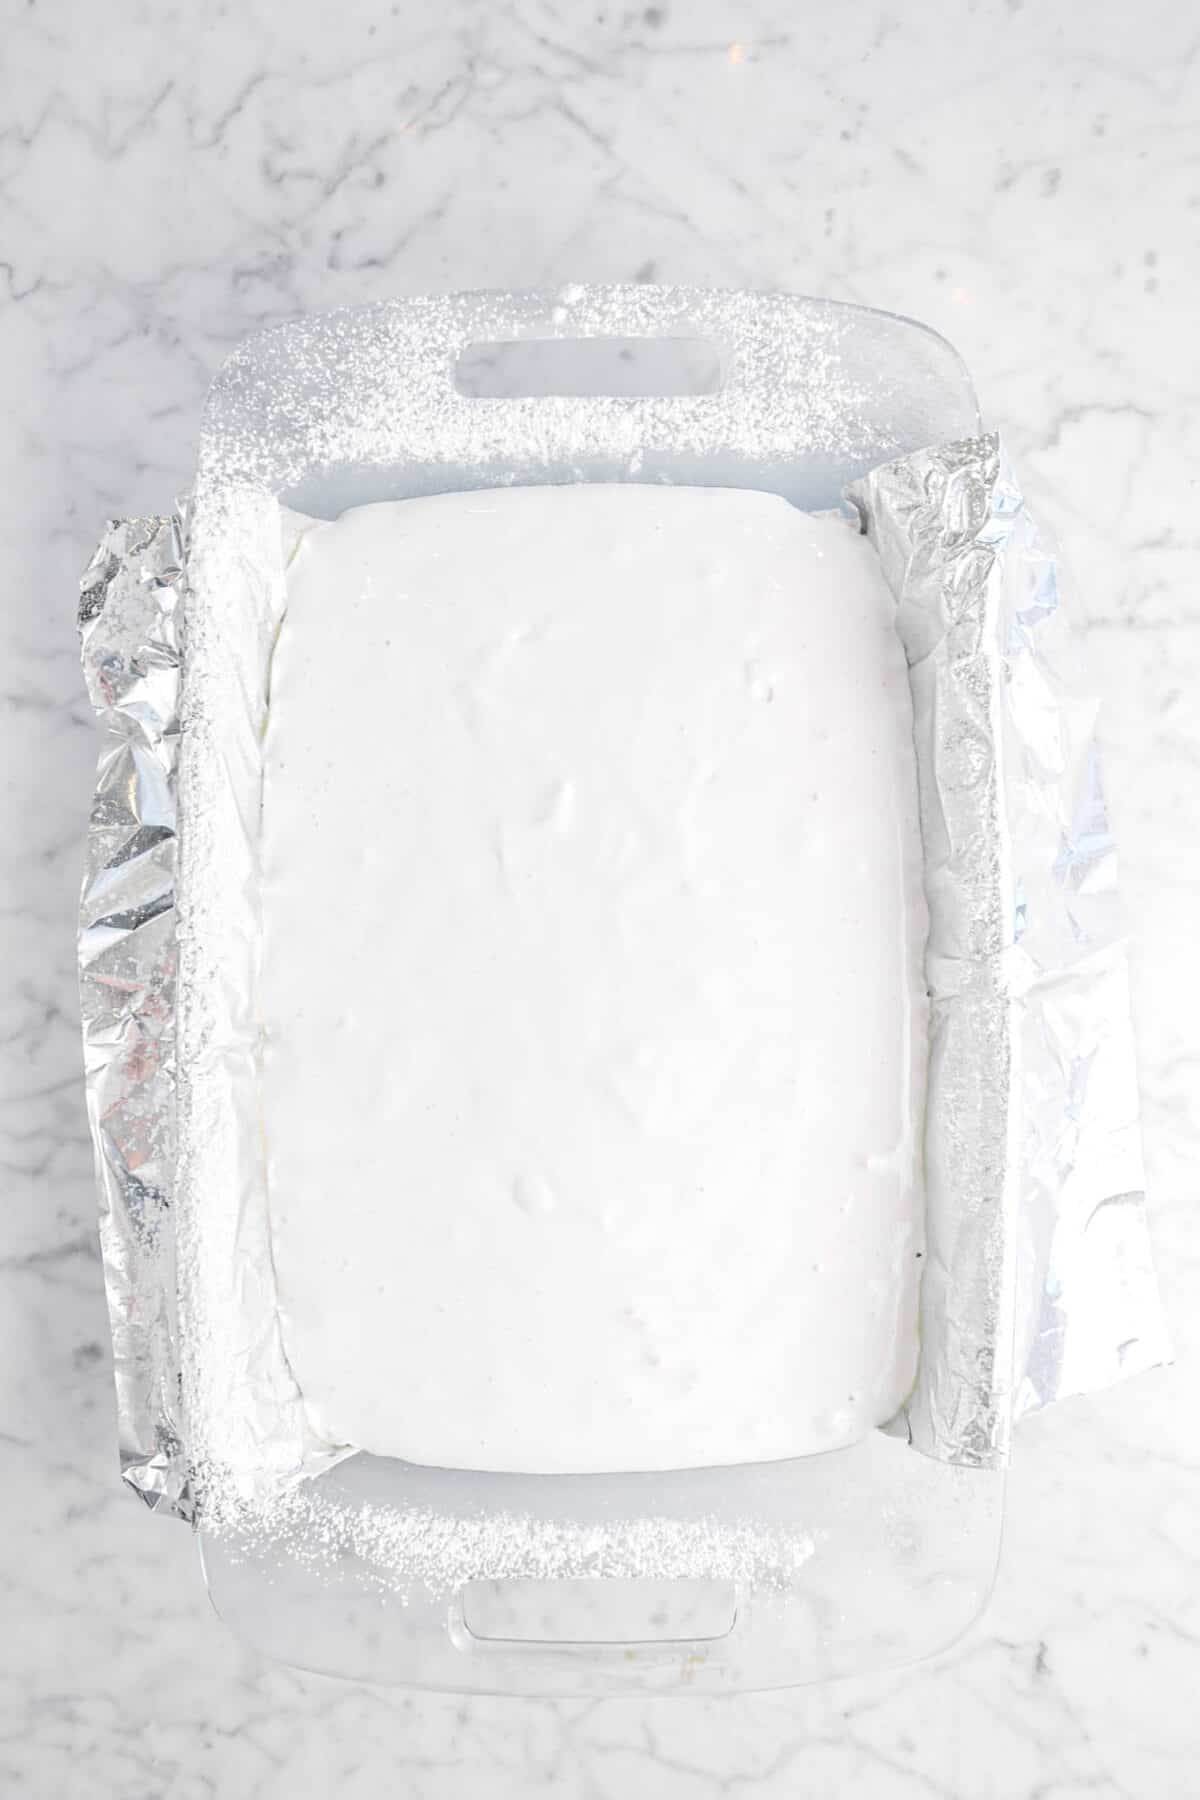 marshmallow mixture in lined pan